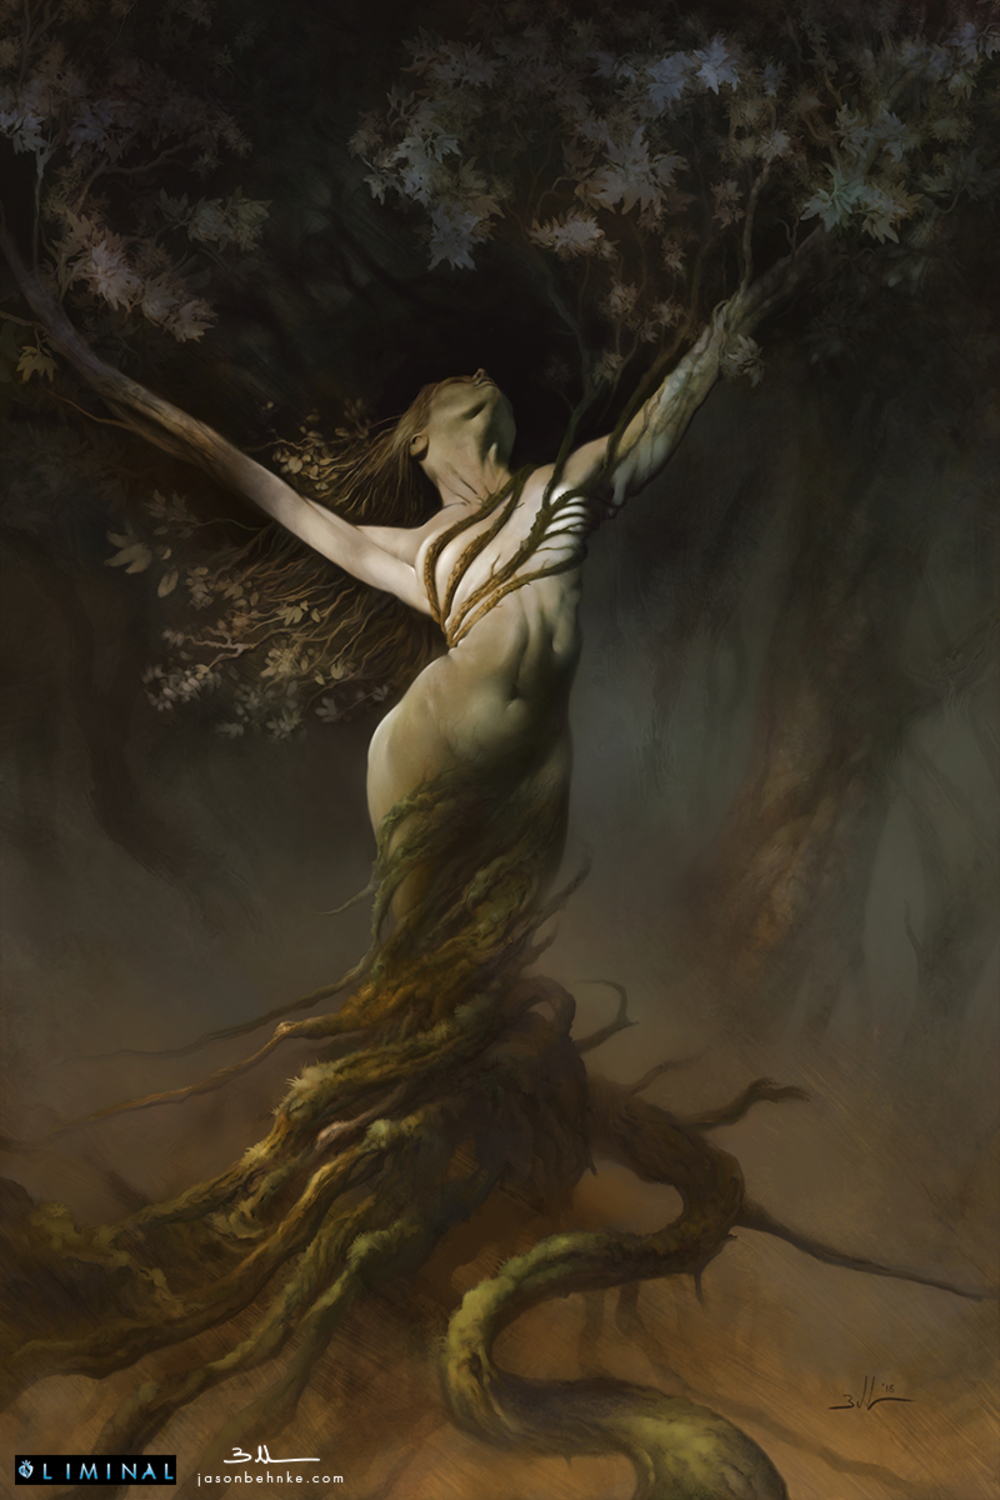 Fae Spirit Artwork by Jason Behnke